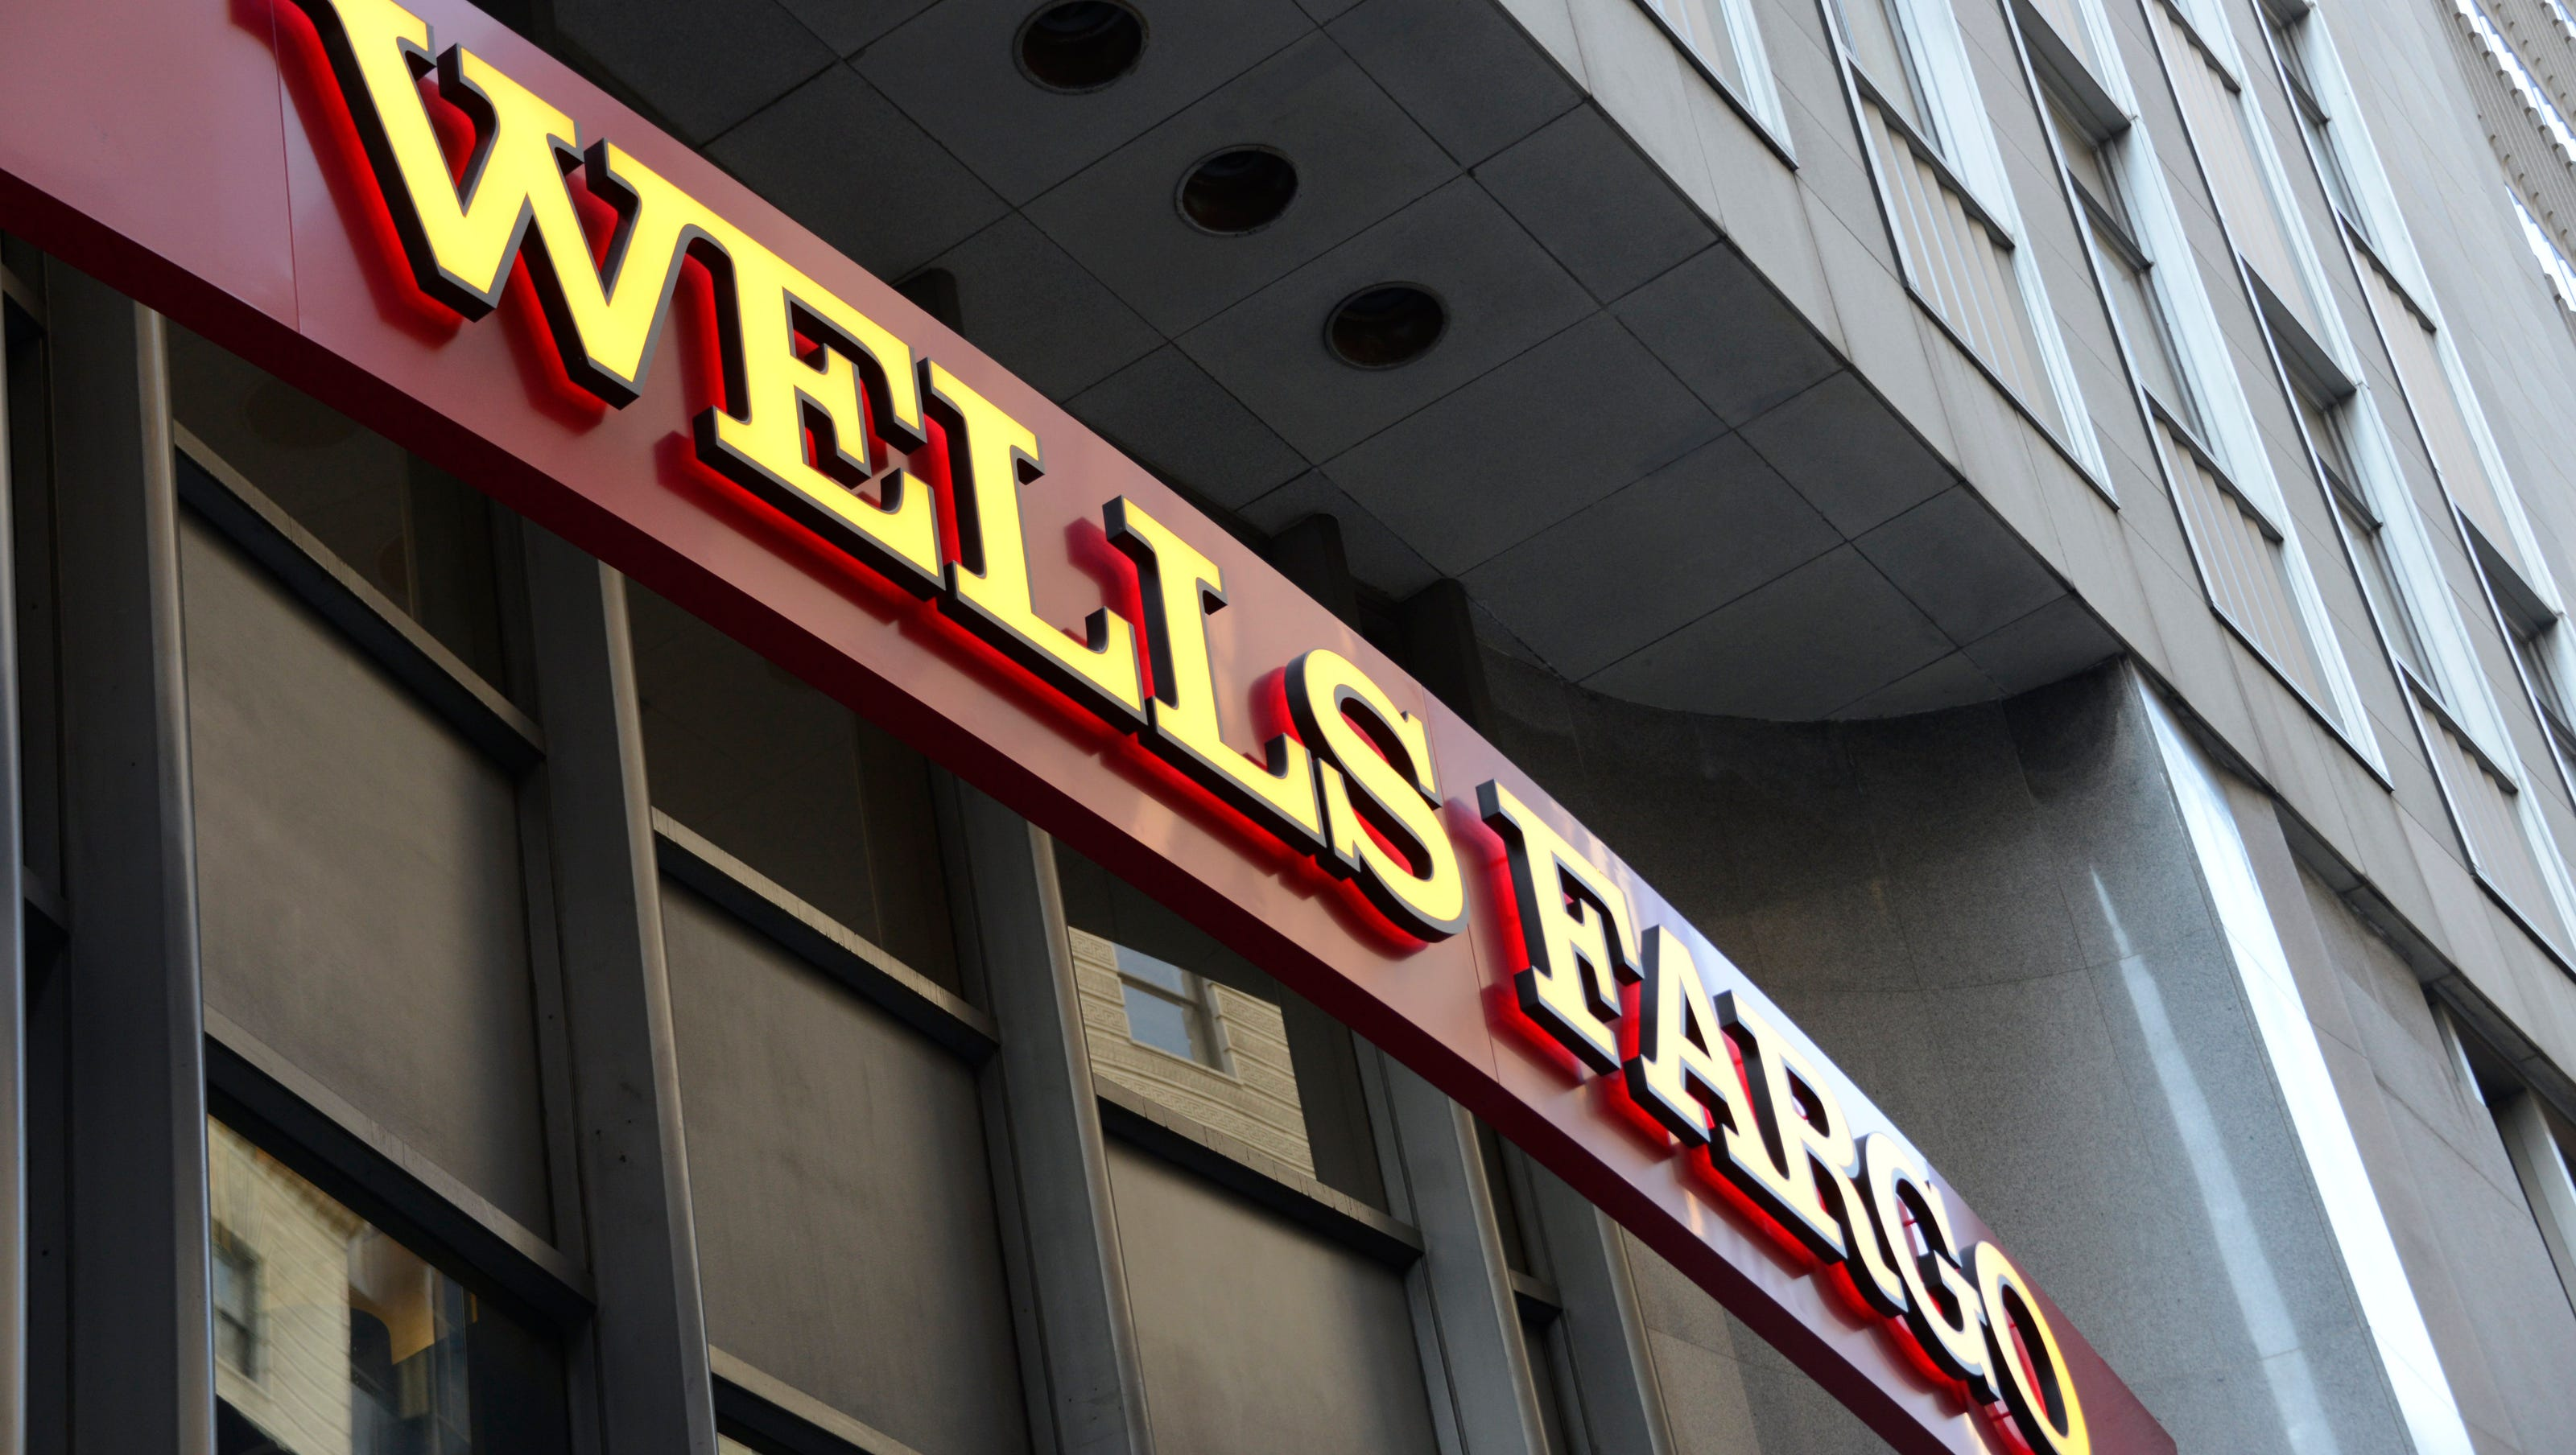 Wells Fargo laying off 400 Des Moines workers as it cuts 1,000 jobs across U.S.